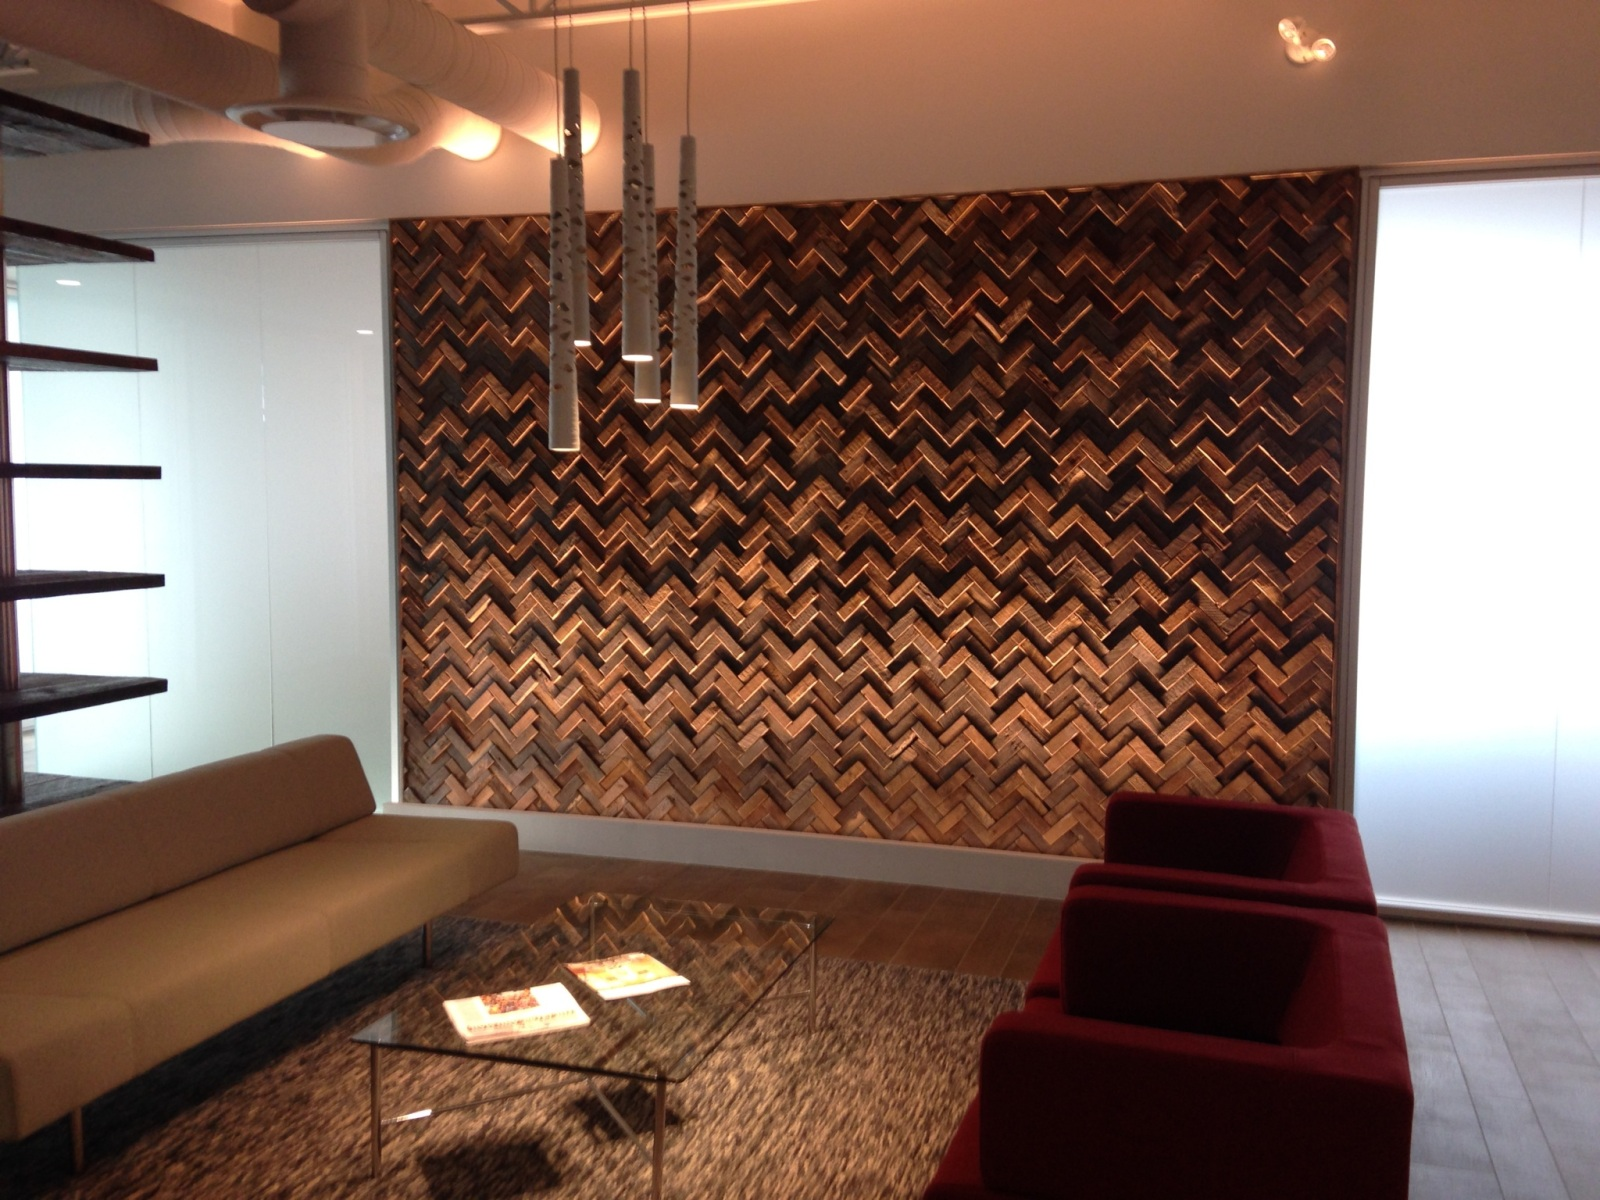 Unique wood wall covering ideas homesfeed - Unique floor covering ideas ...